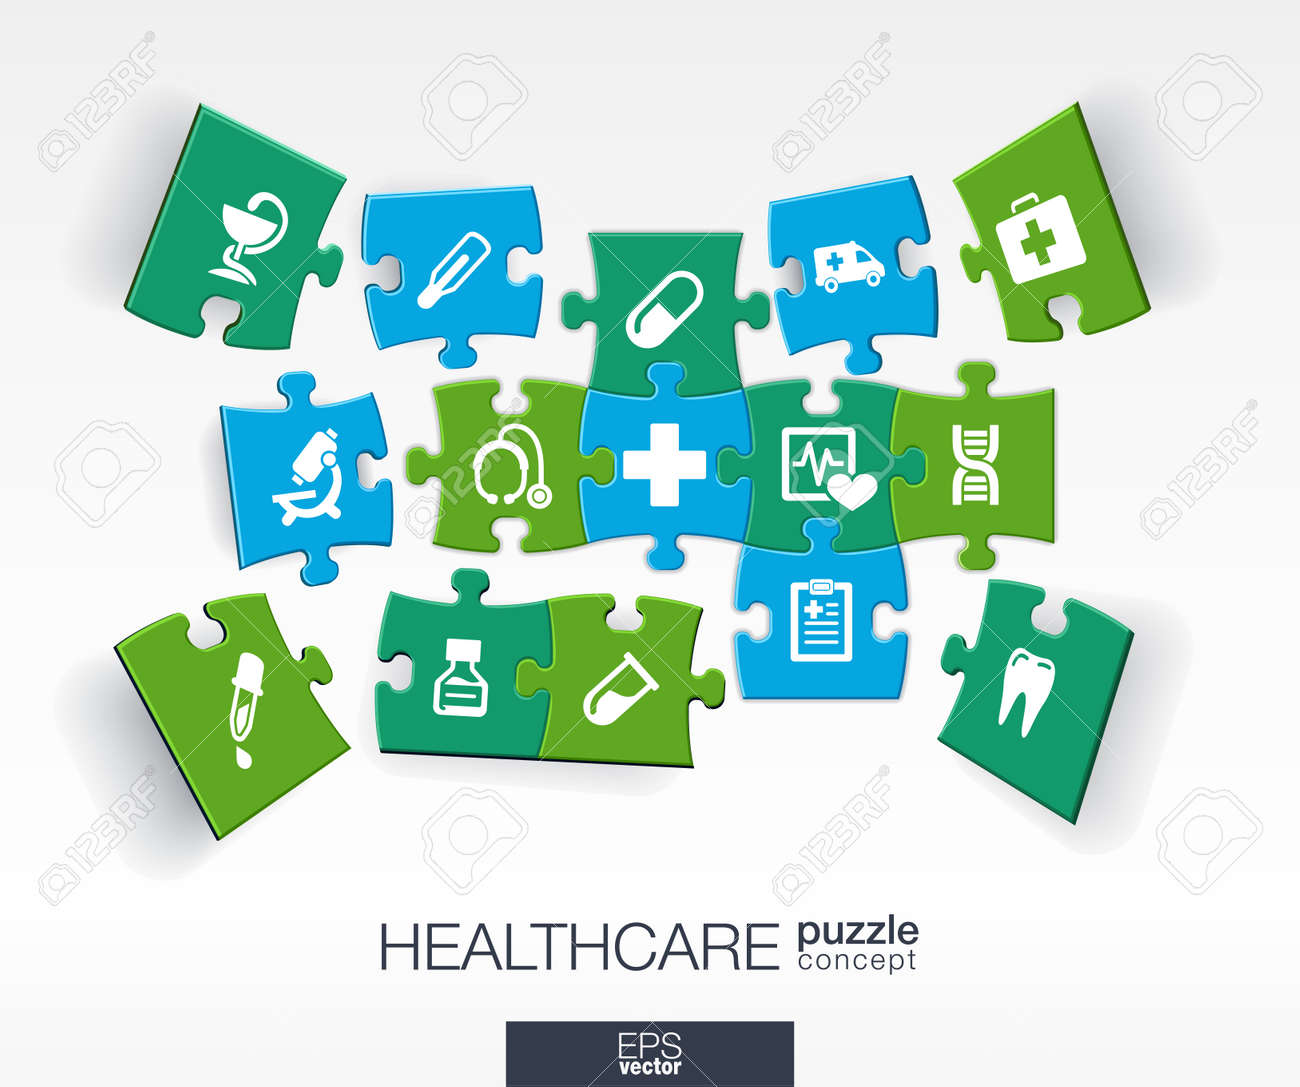 Abstract medicine background with connected color puzzles integrated flat icons. 3d infographic concept with medical health healthcare cross pieces in perspective. Vector interactive illustration. - 41722588